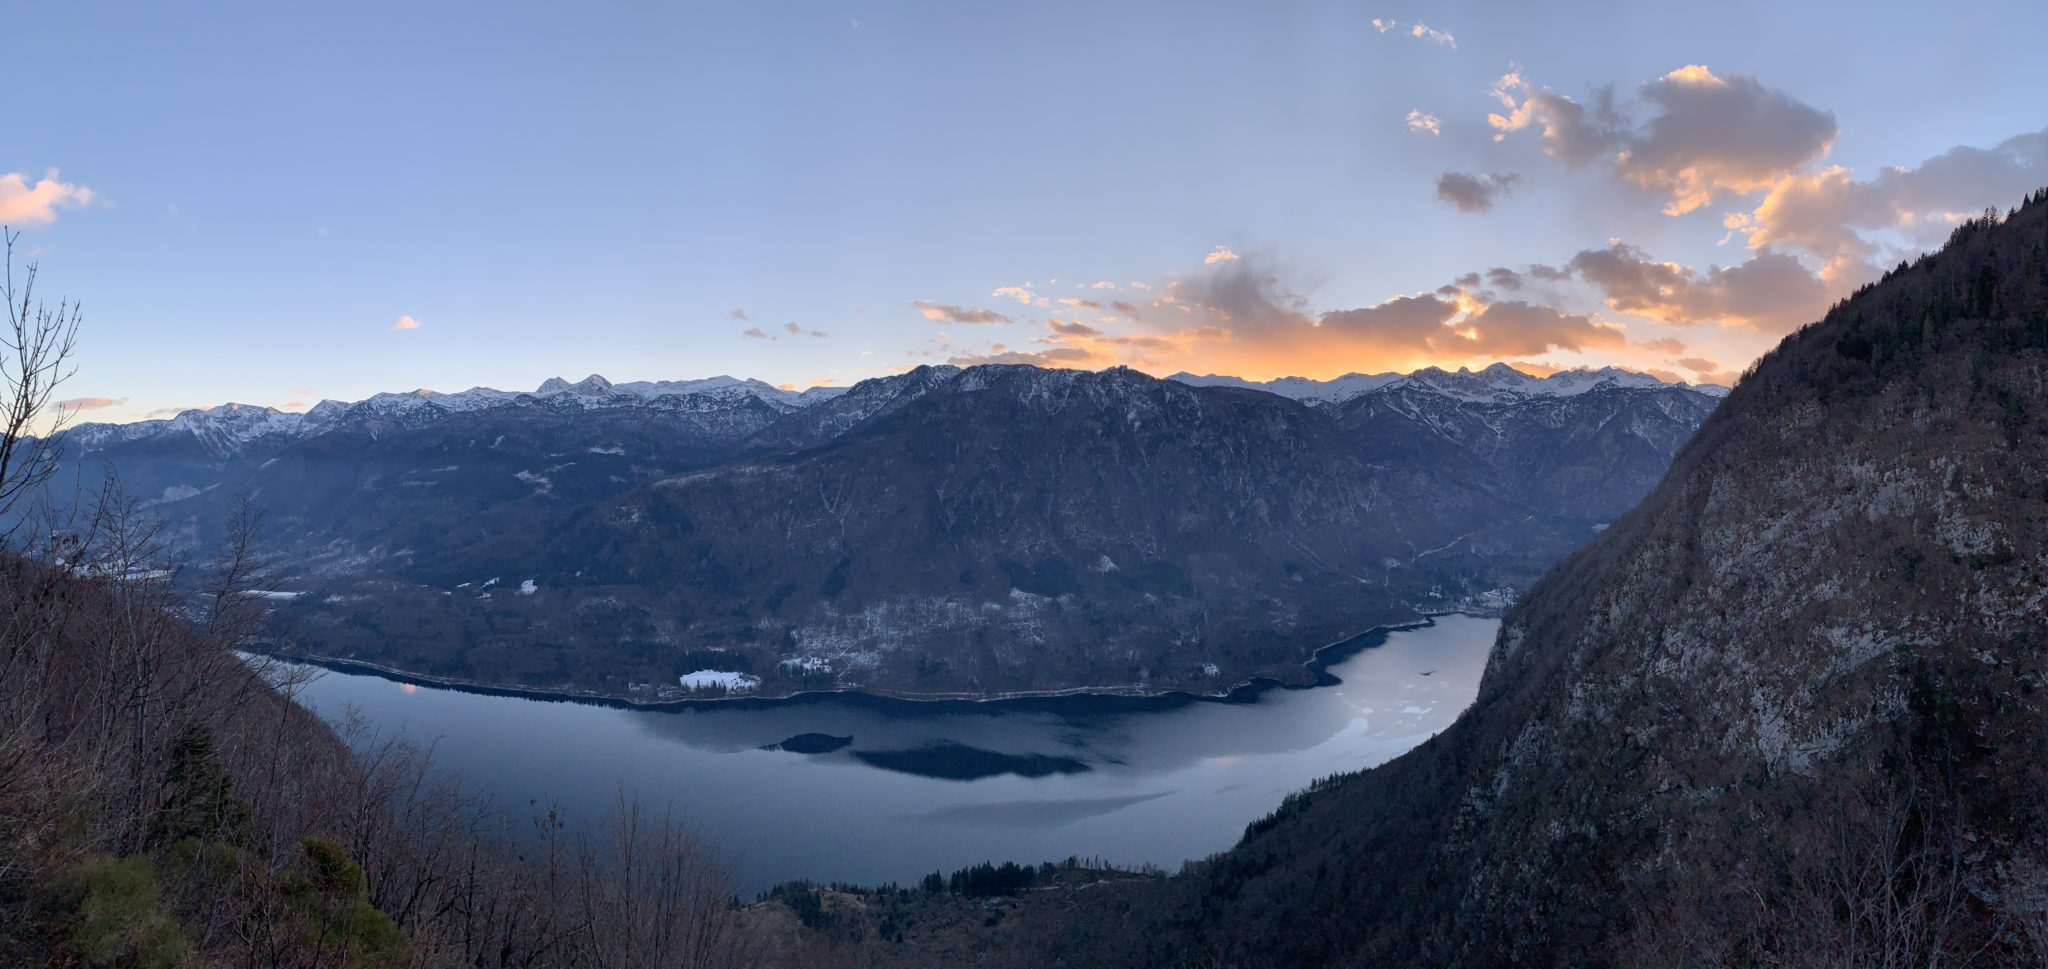 Lake Bohinj for sunset, Julian Alps, Slovenia